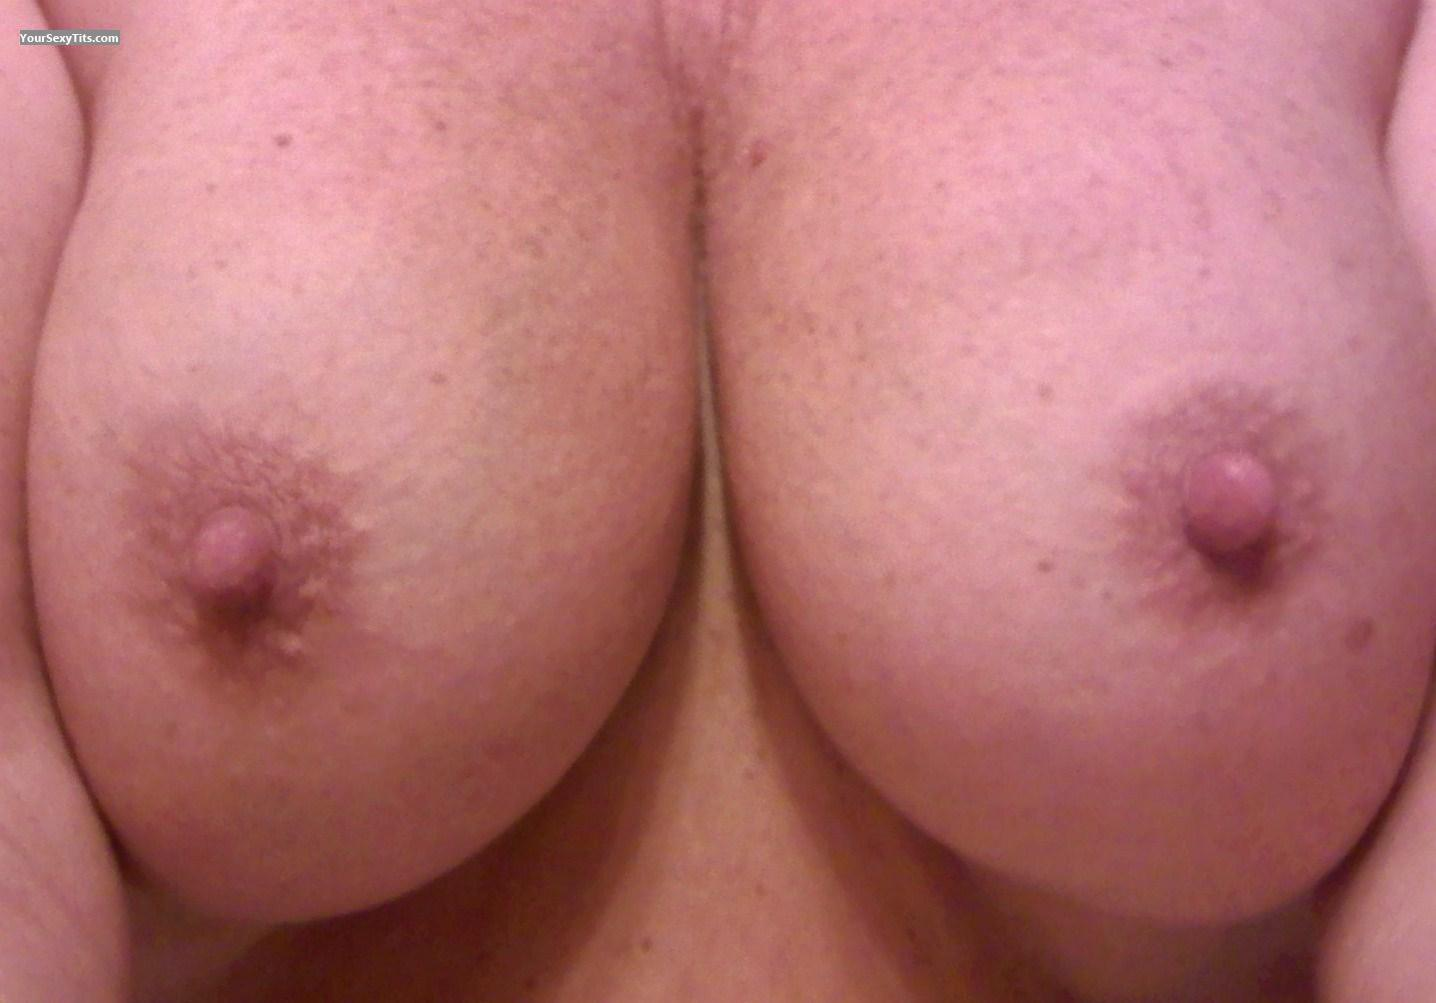 My Very big Tits Selfie by Lady